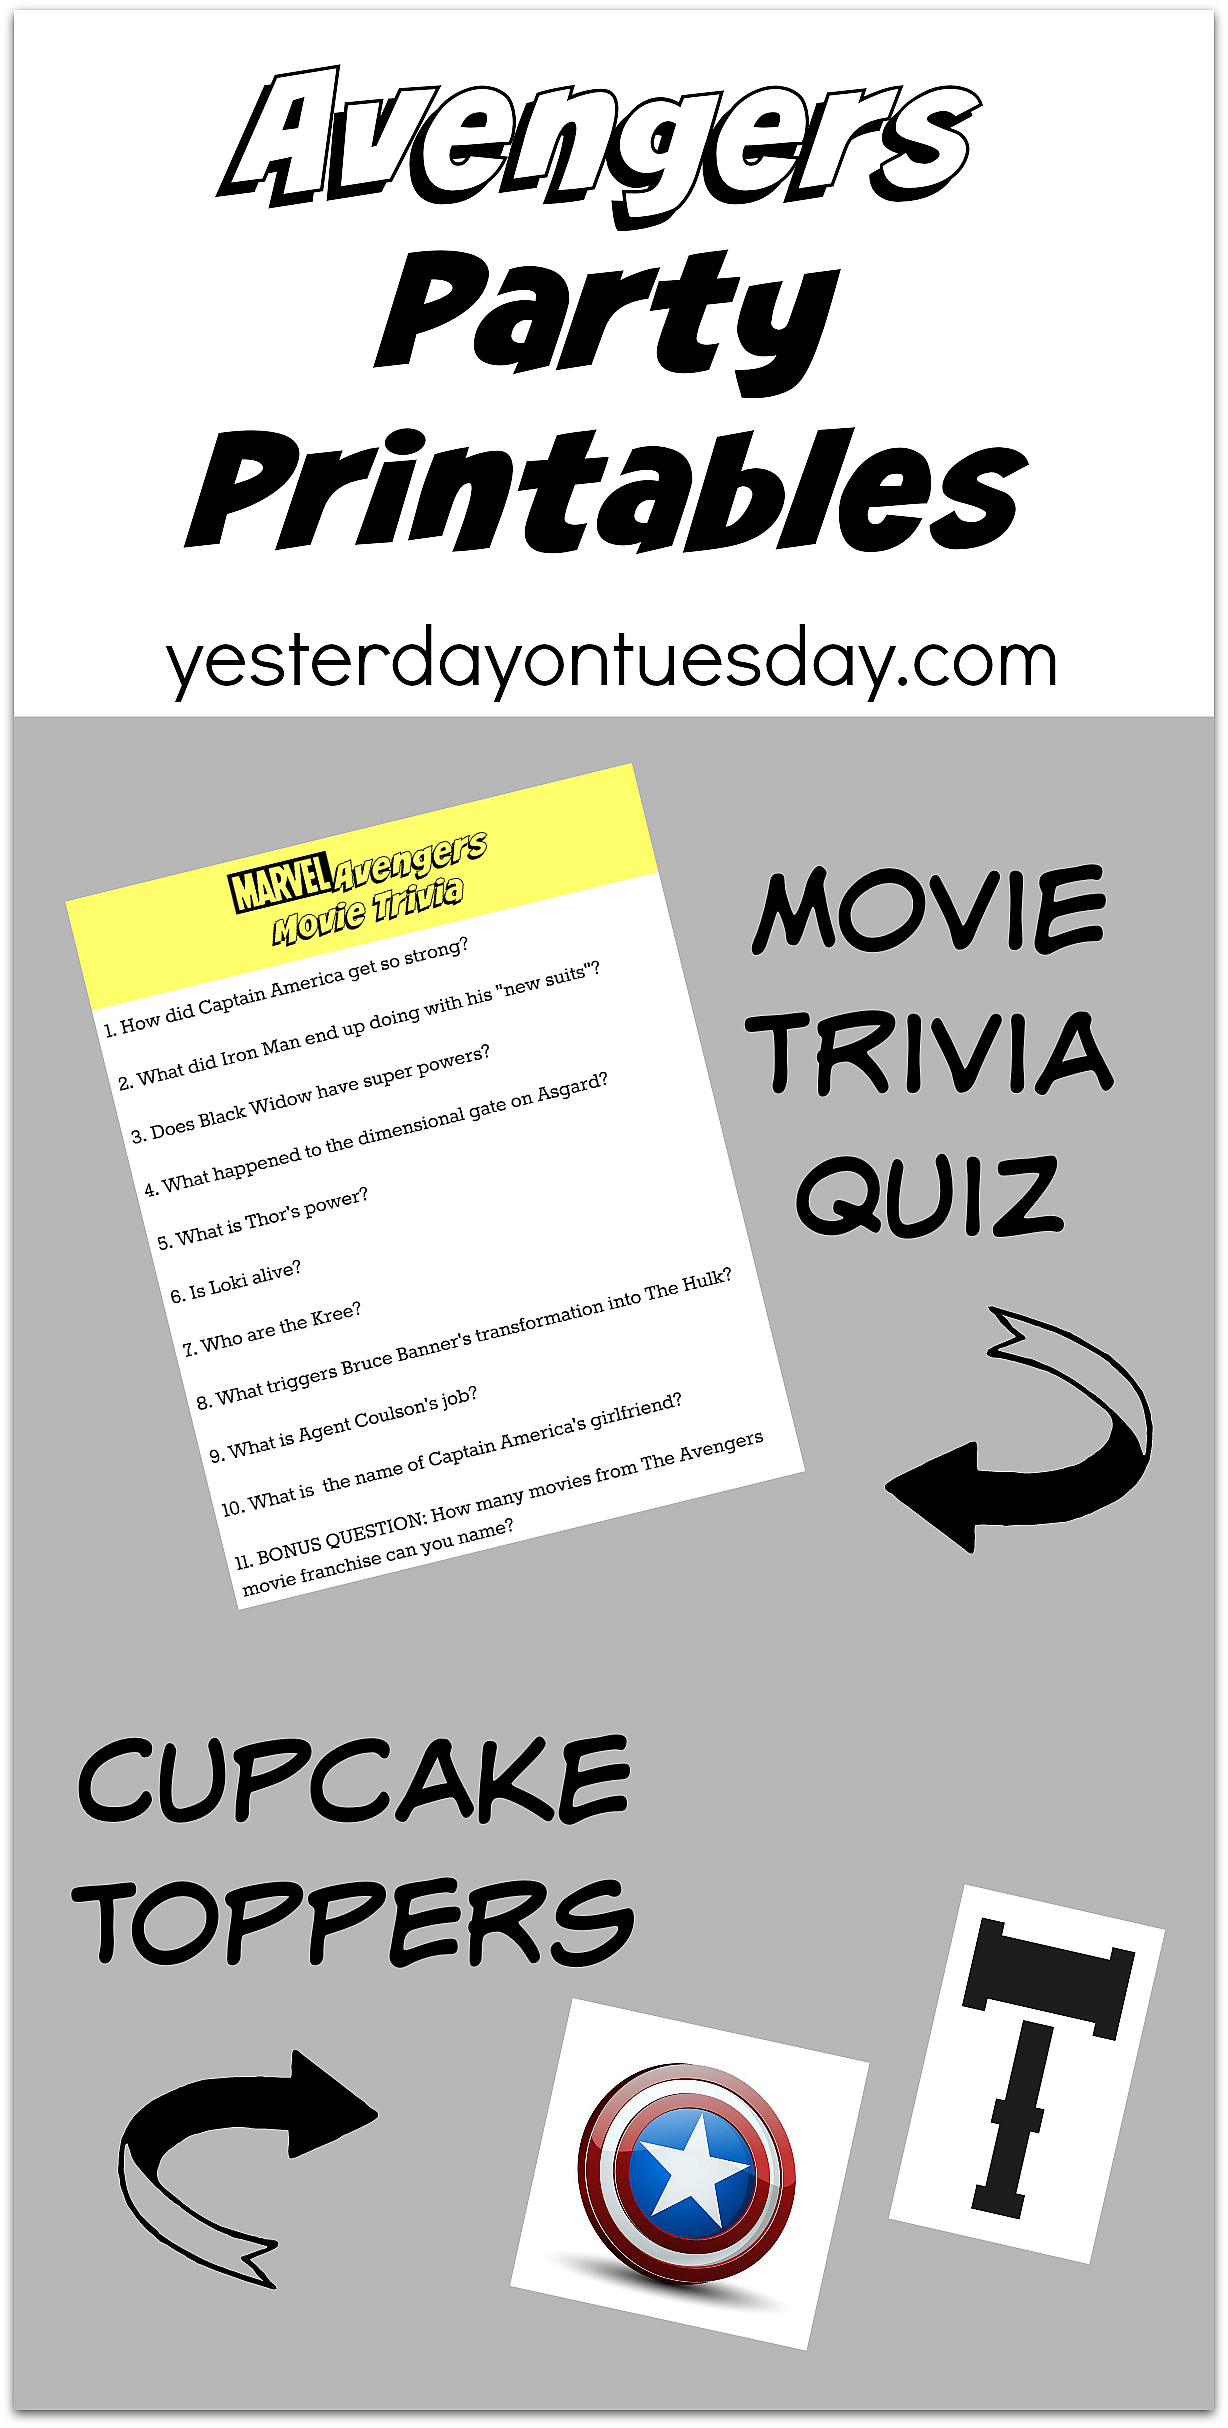 Fun Avengers Party Printables including a movie trivia quiz and